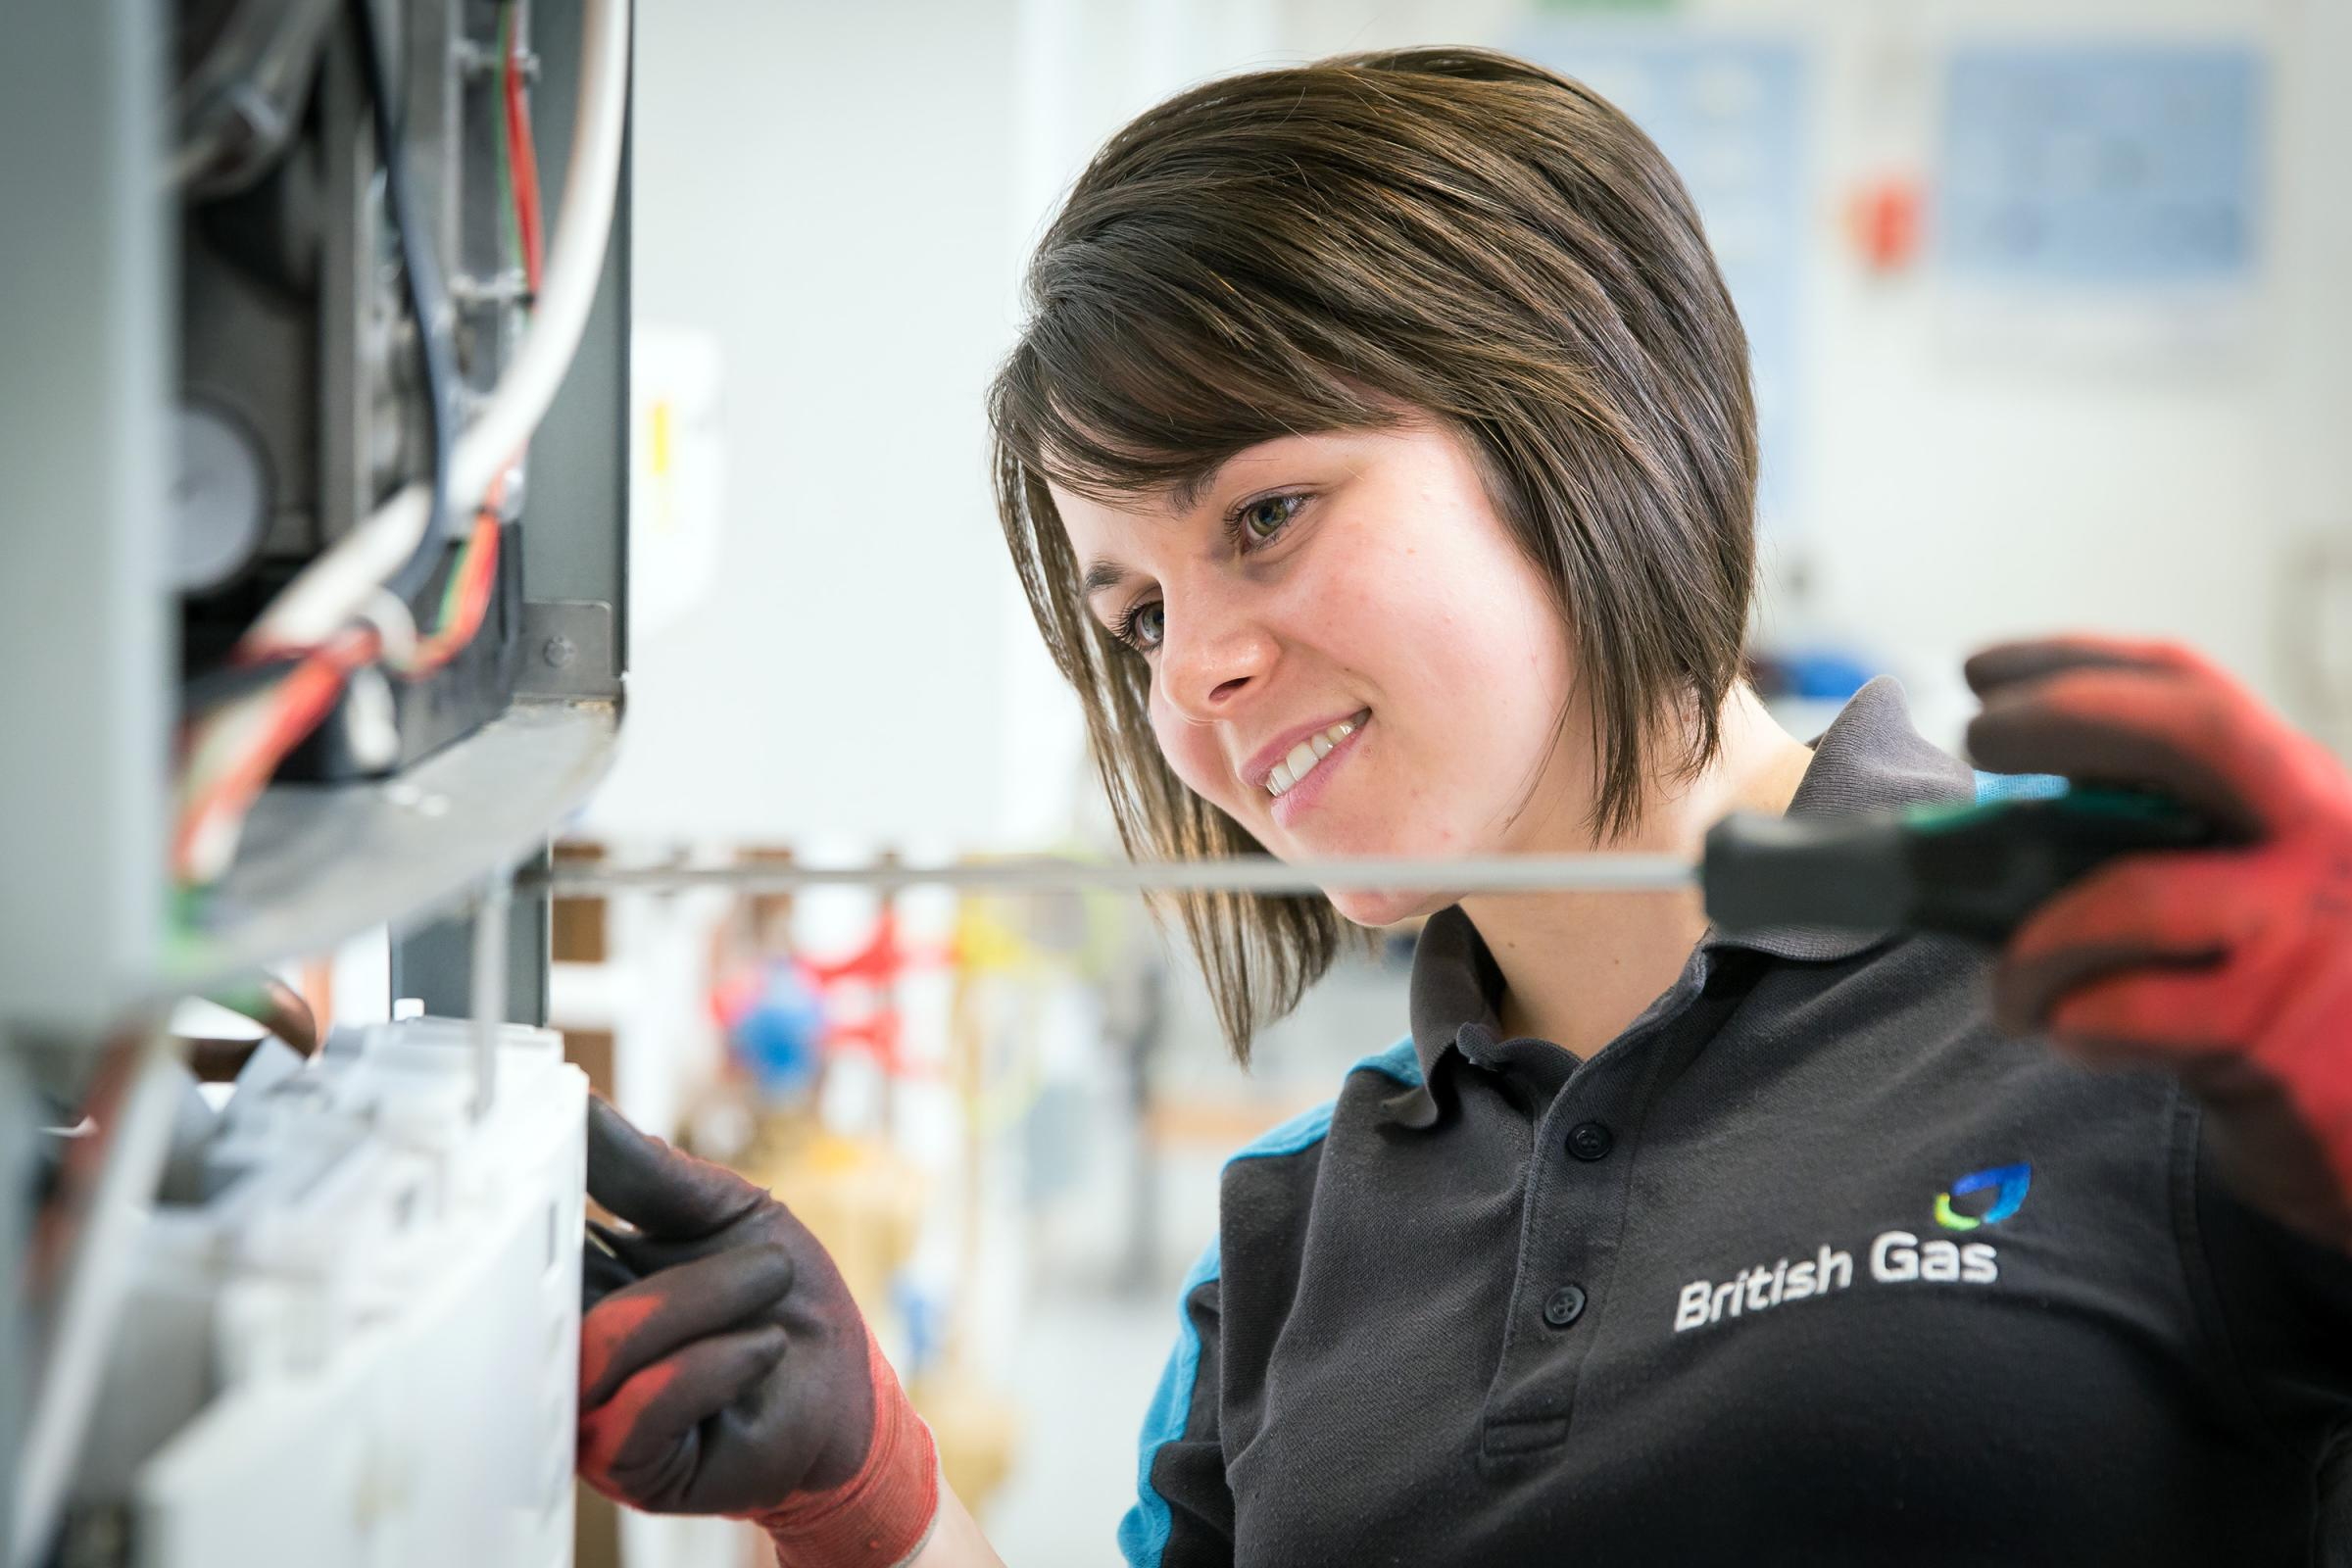 APPRENTICE: Kirsty Williams